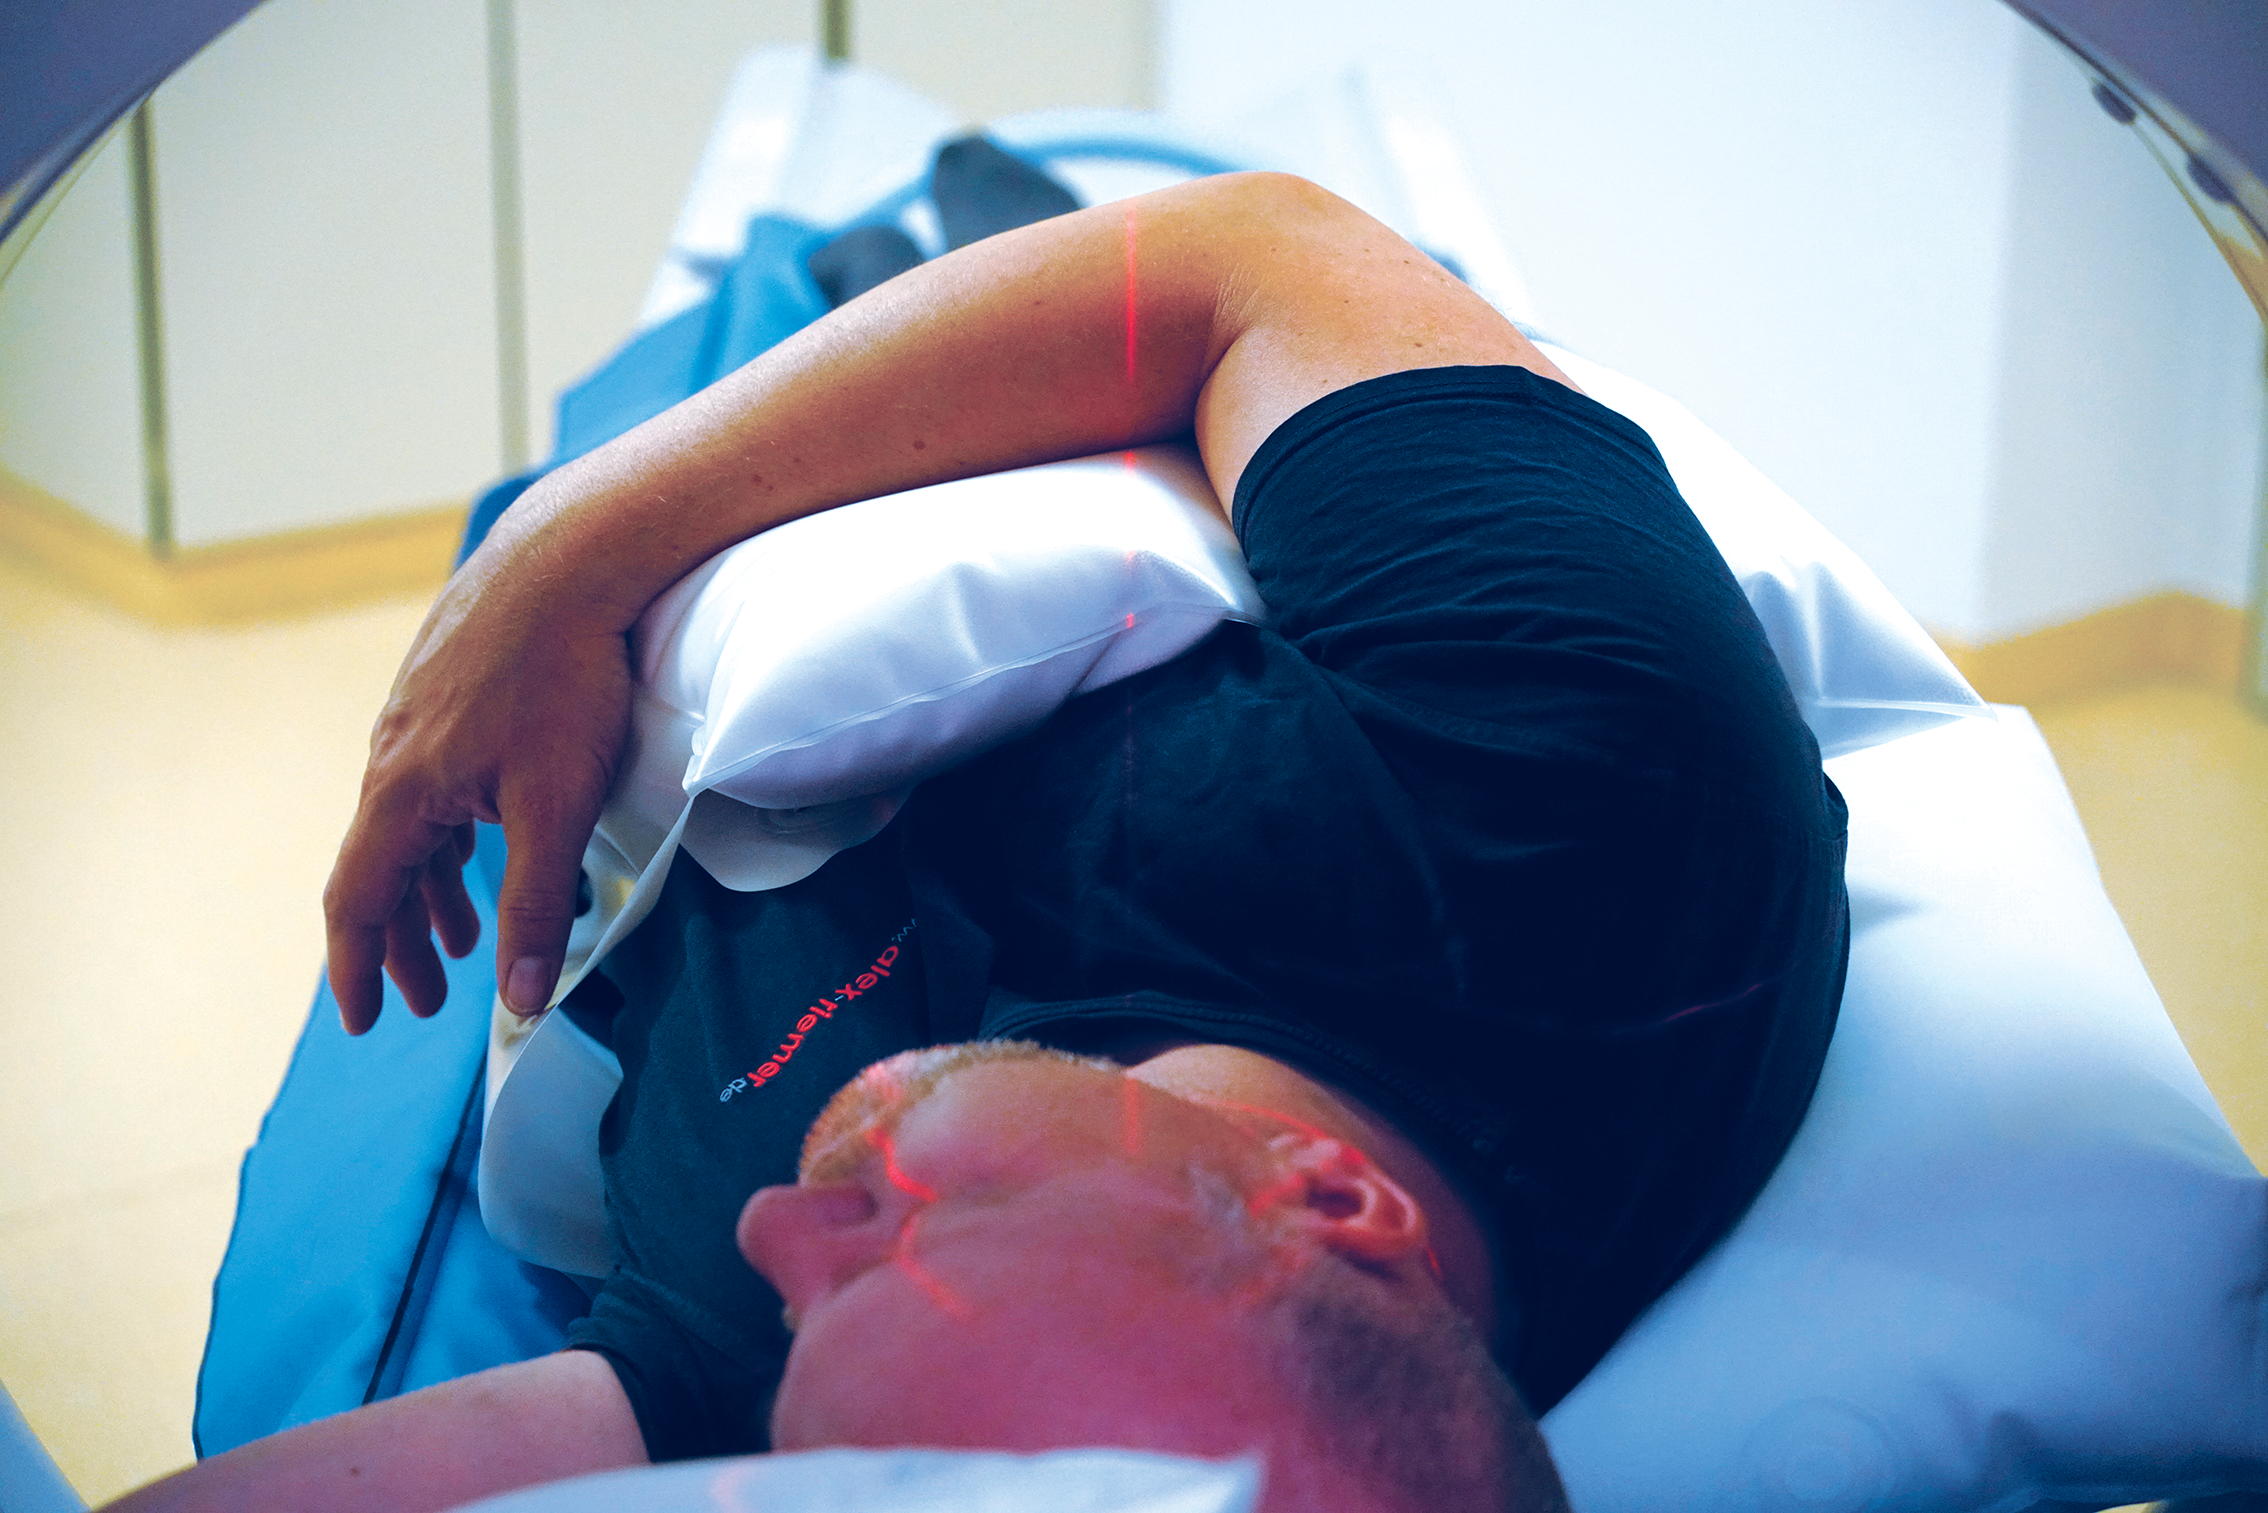 Patient in supine position and elbow on body using PearlFit